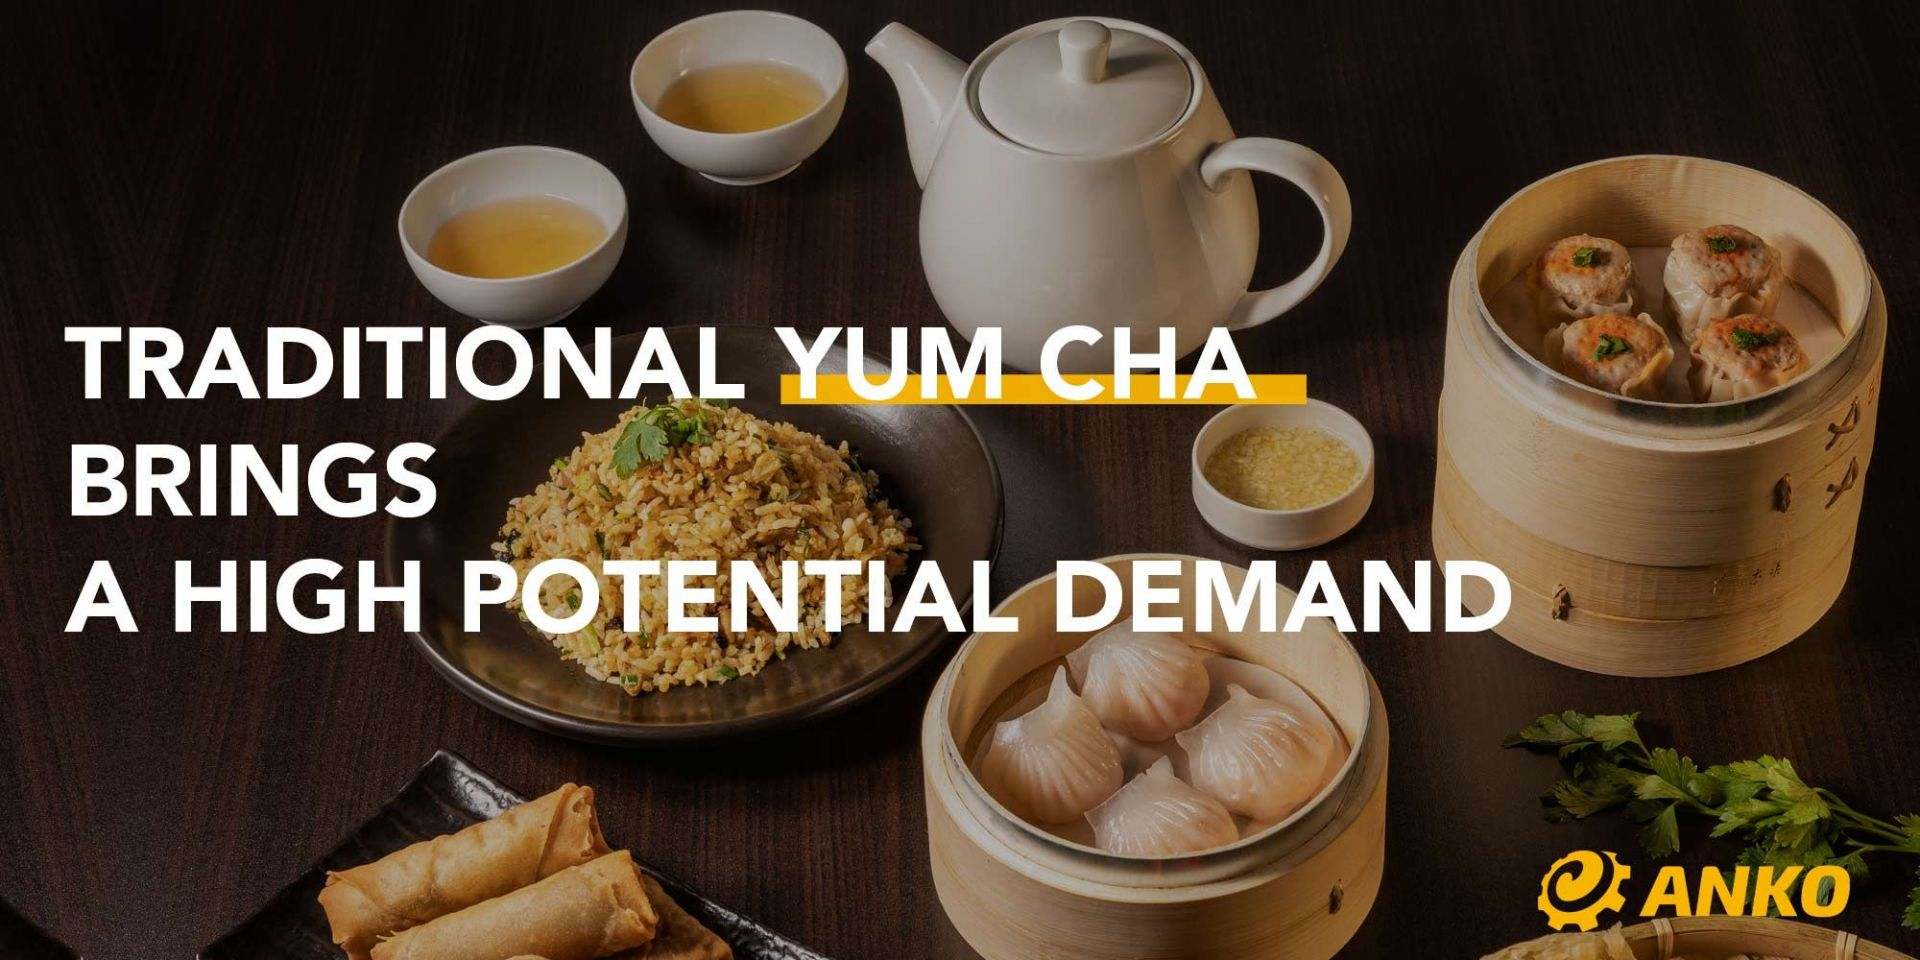 【Food Industry Trends】Dim Sum – Delicious Cantonese Treats with Full of Surprises